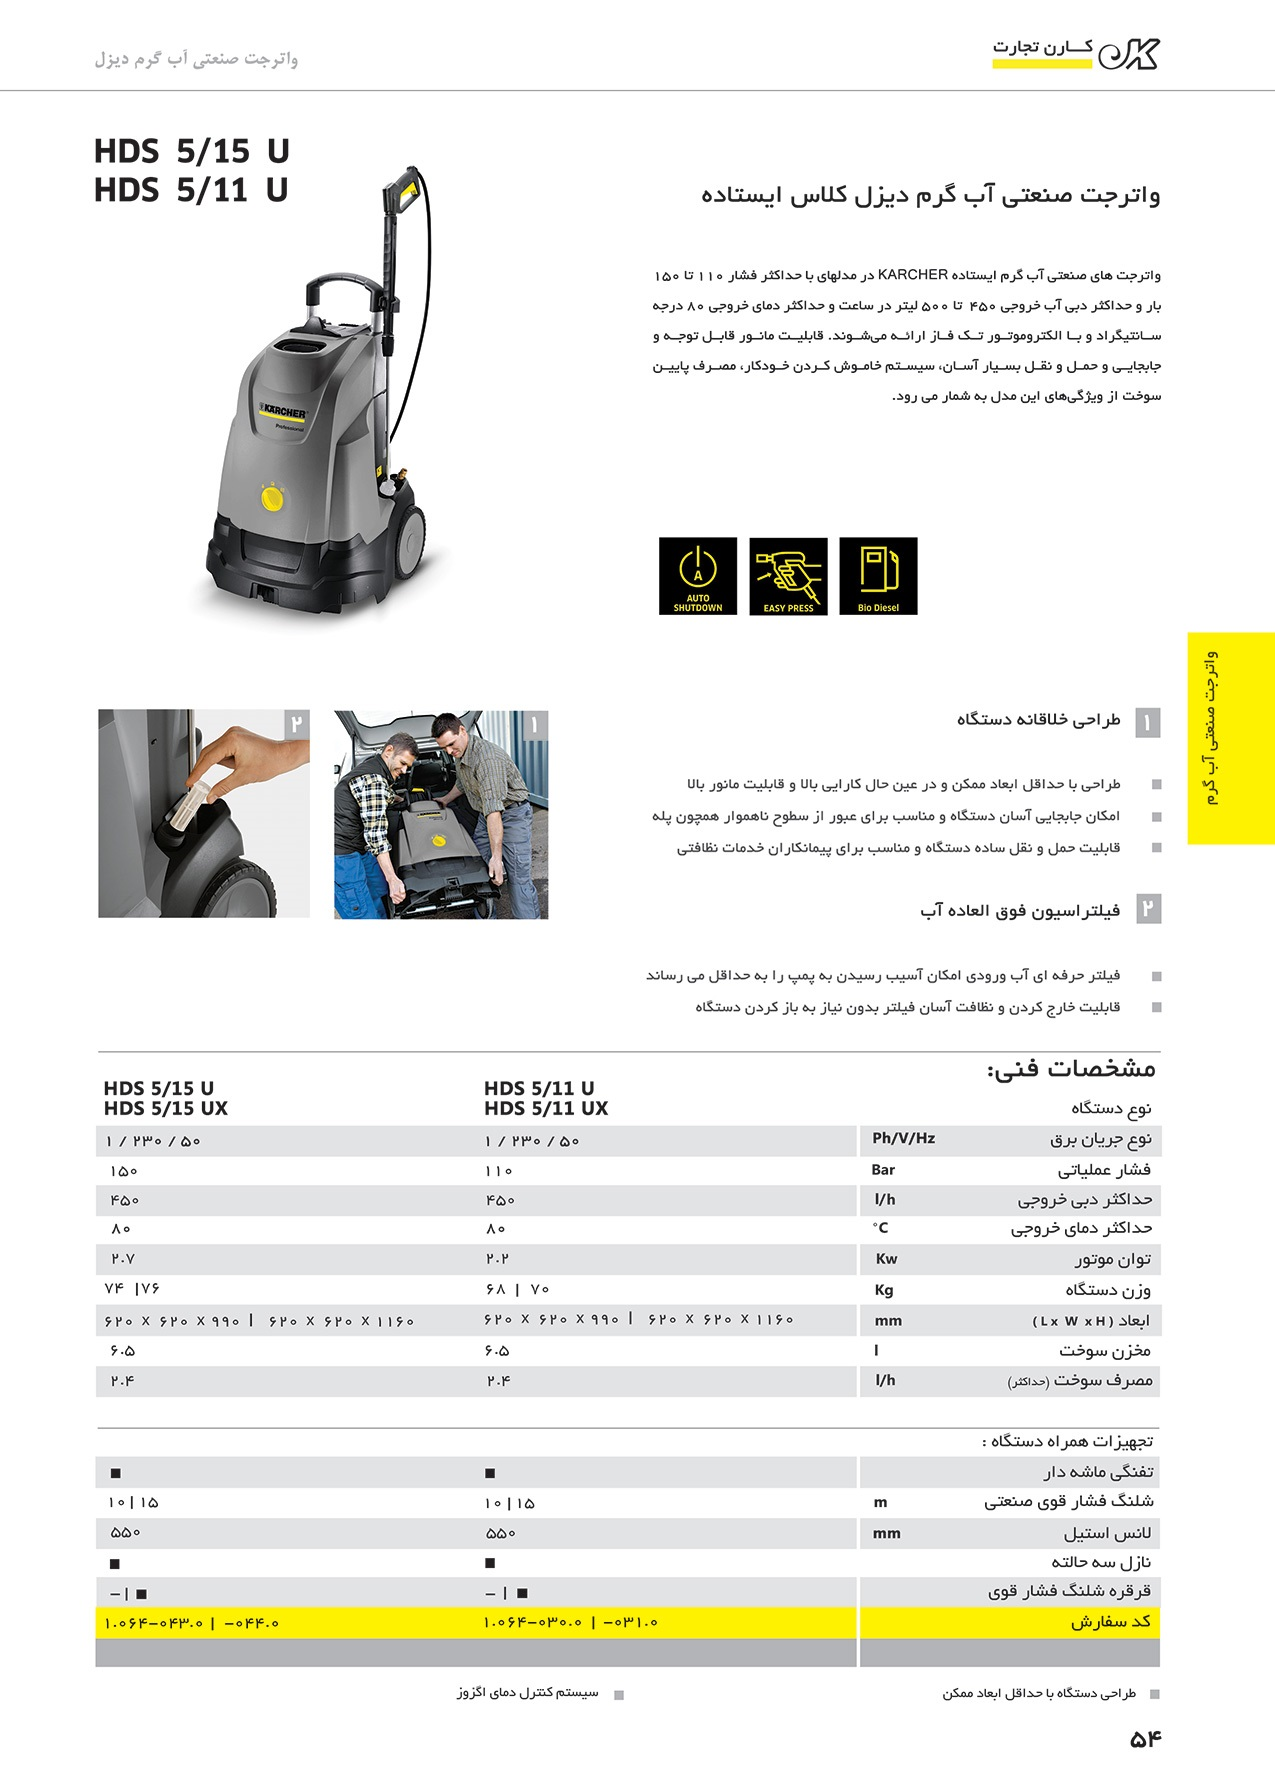 karcher hds 5 11 u manual